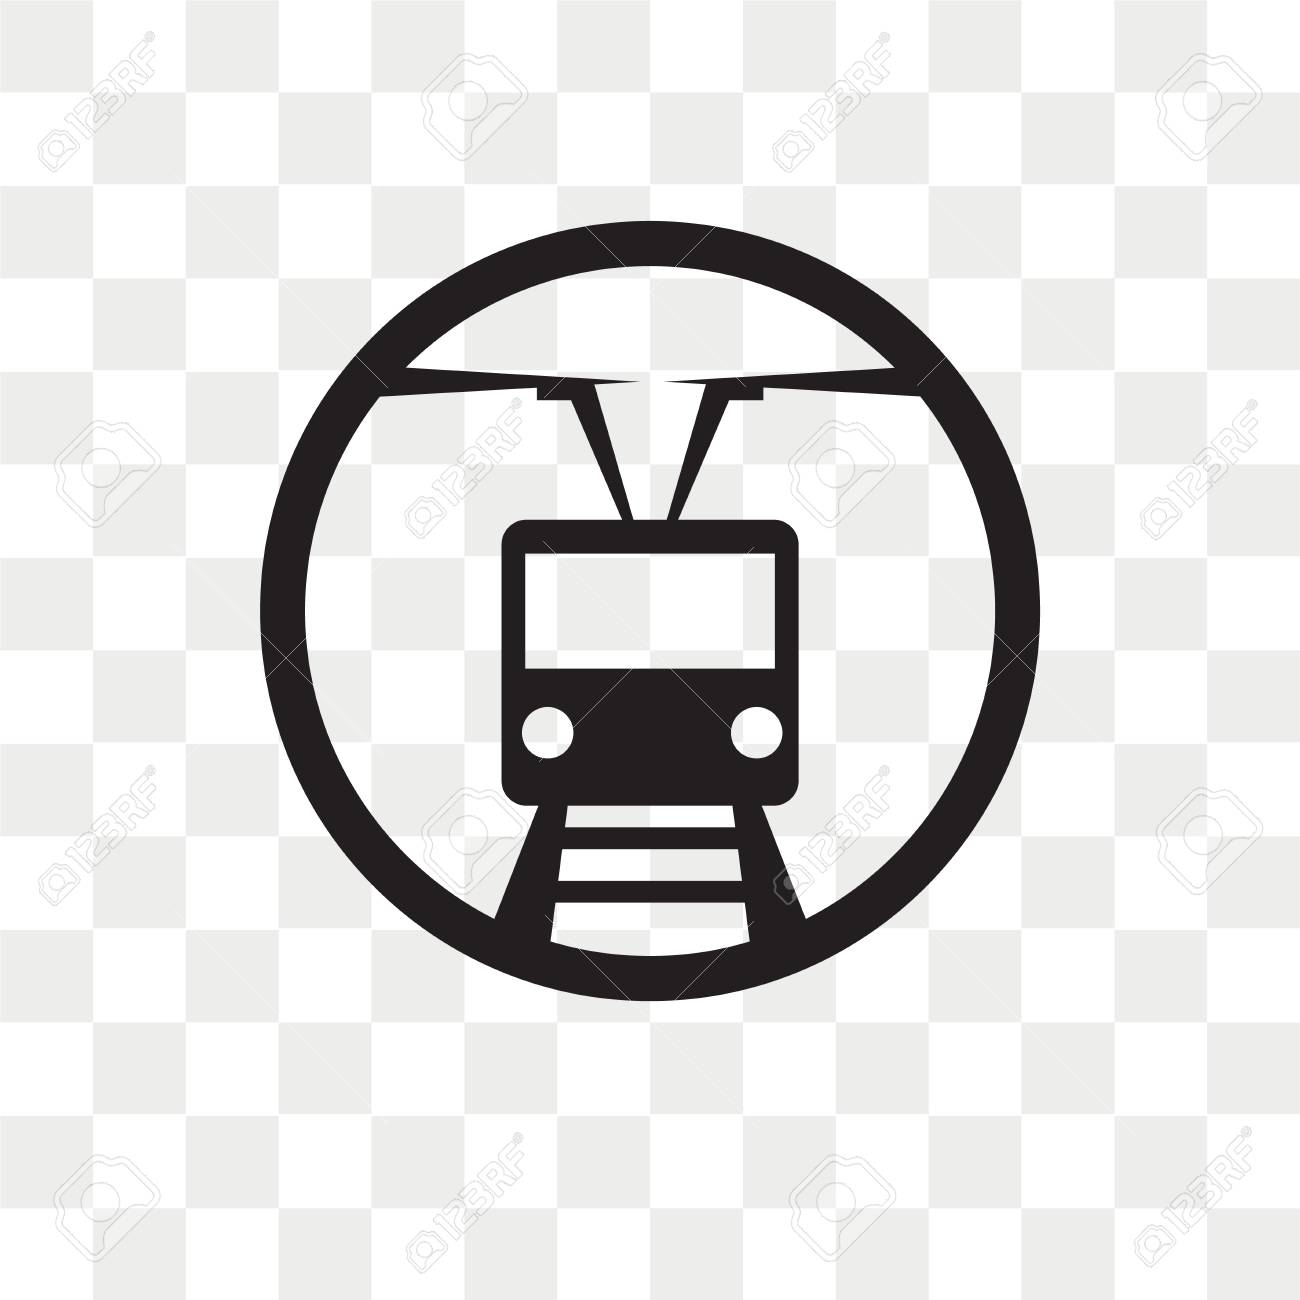 Tram stop vector icon isolated on transparent background, Tram